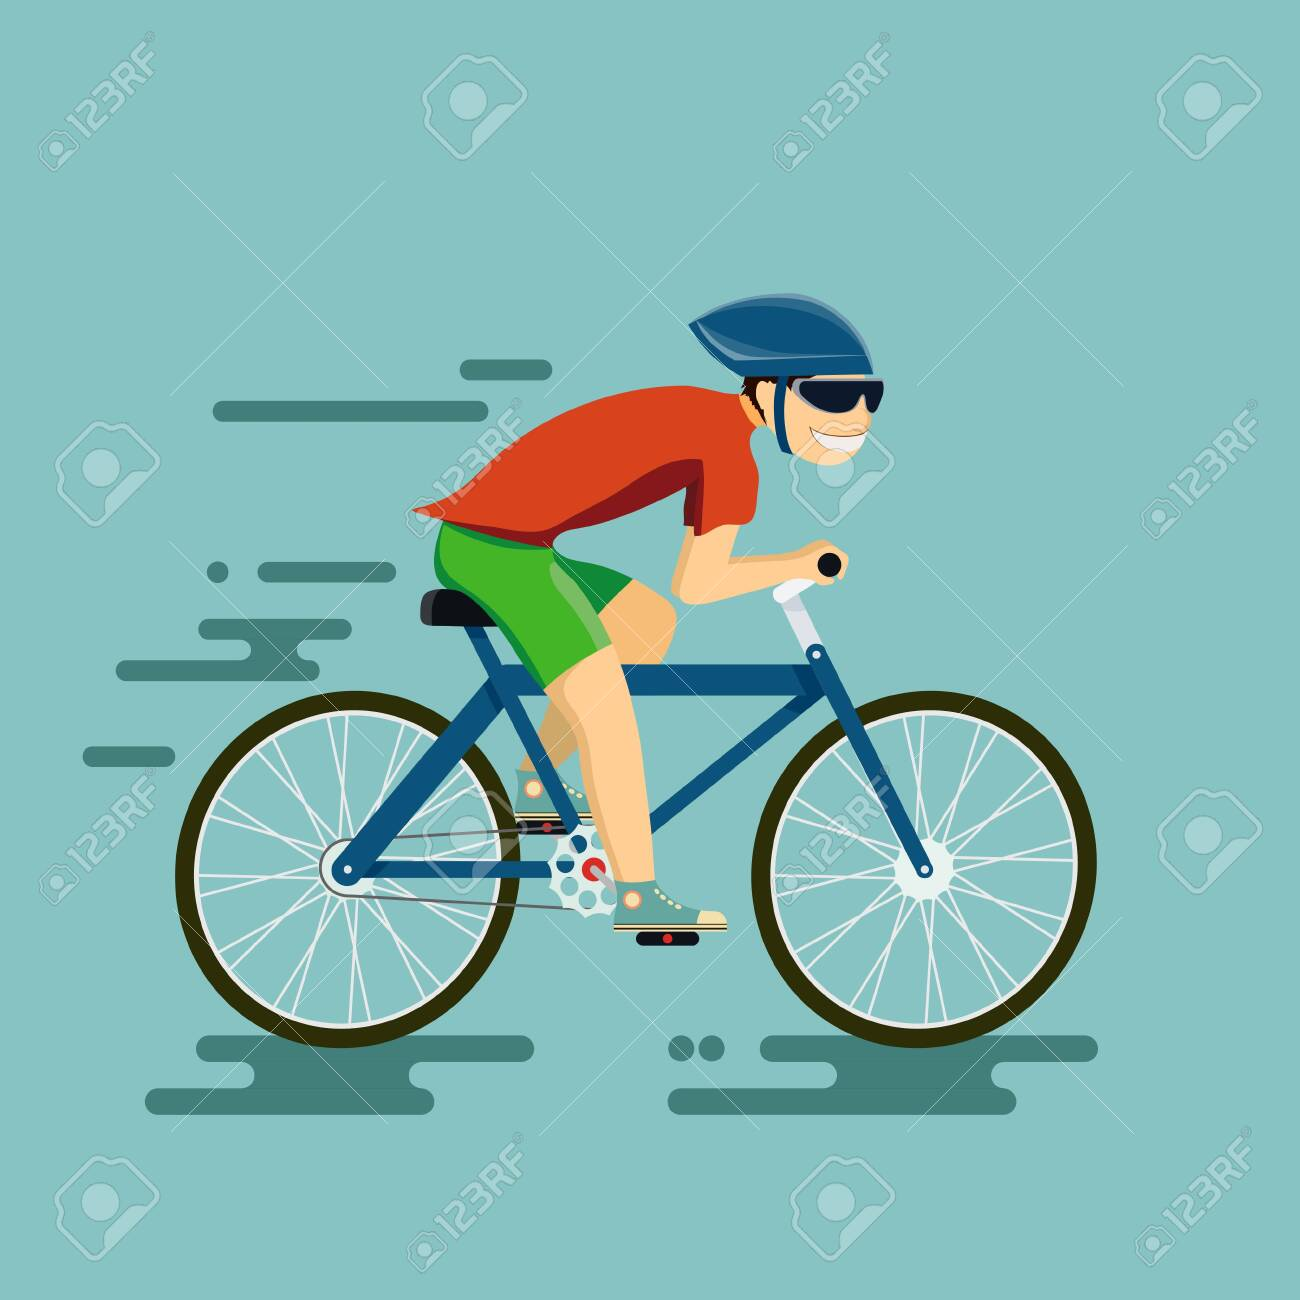 Happy man riding a bike. Vector illustration in the style of flat graphics. - 124144211